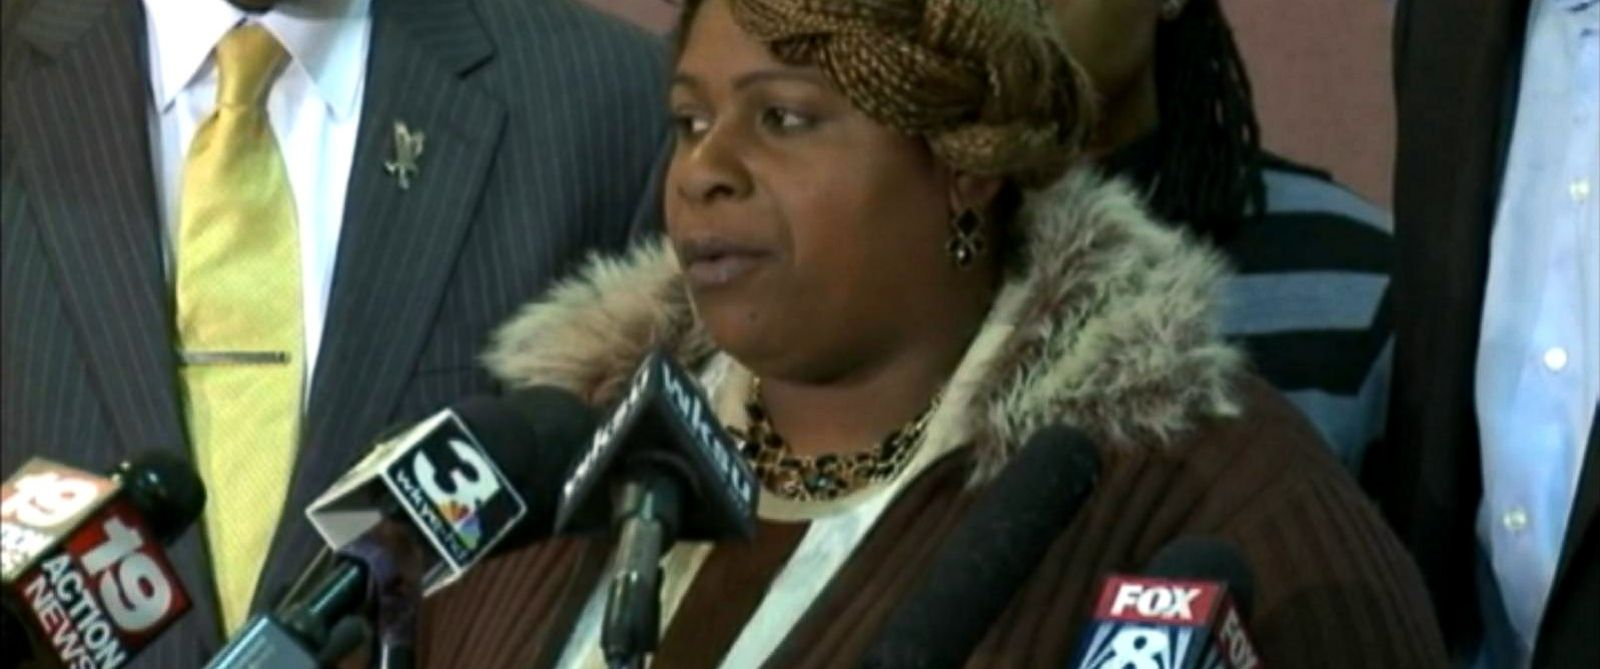 PHOTO: Tamir Rices mother Samaria Rice spoke out about the sequence of events following her sons fatal shooting, Nov. 22, 2014.